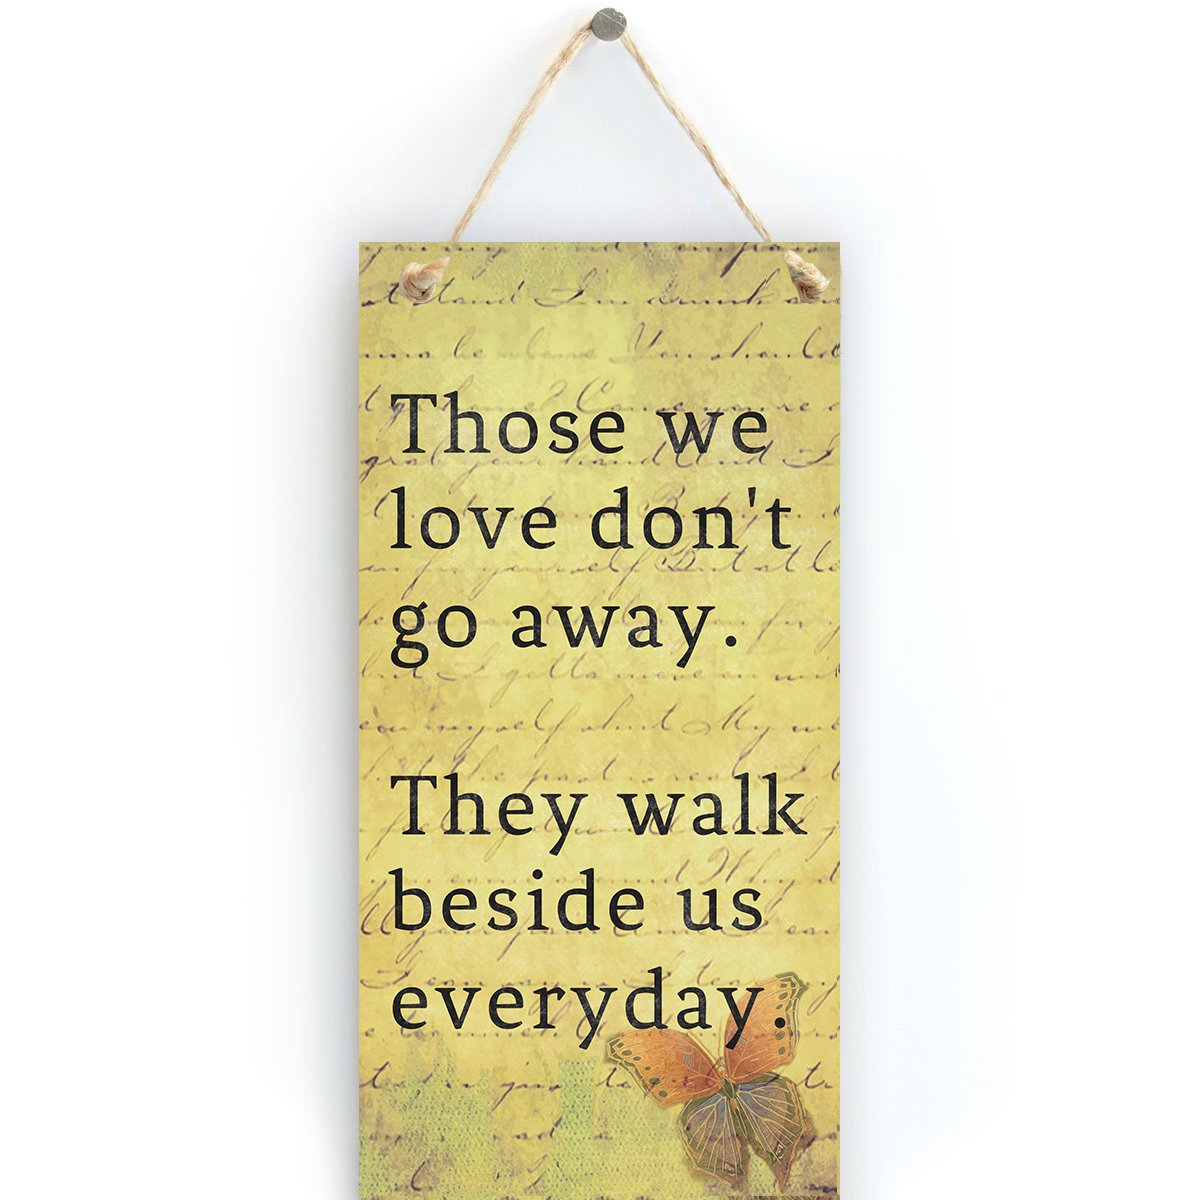 Home Decorative Sign- Those We Love Don't Go Away. They Walk Beside Us Everyday, Vintage Style Gift Sign (5'' x 10'')